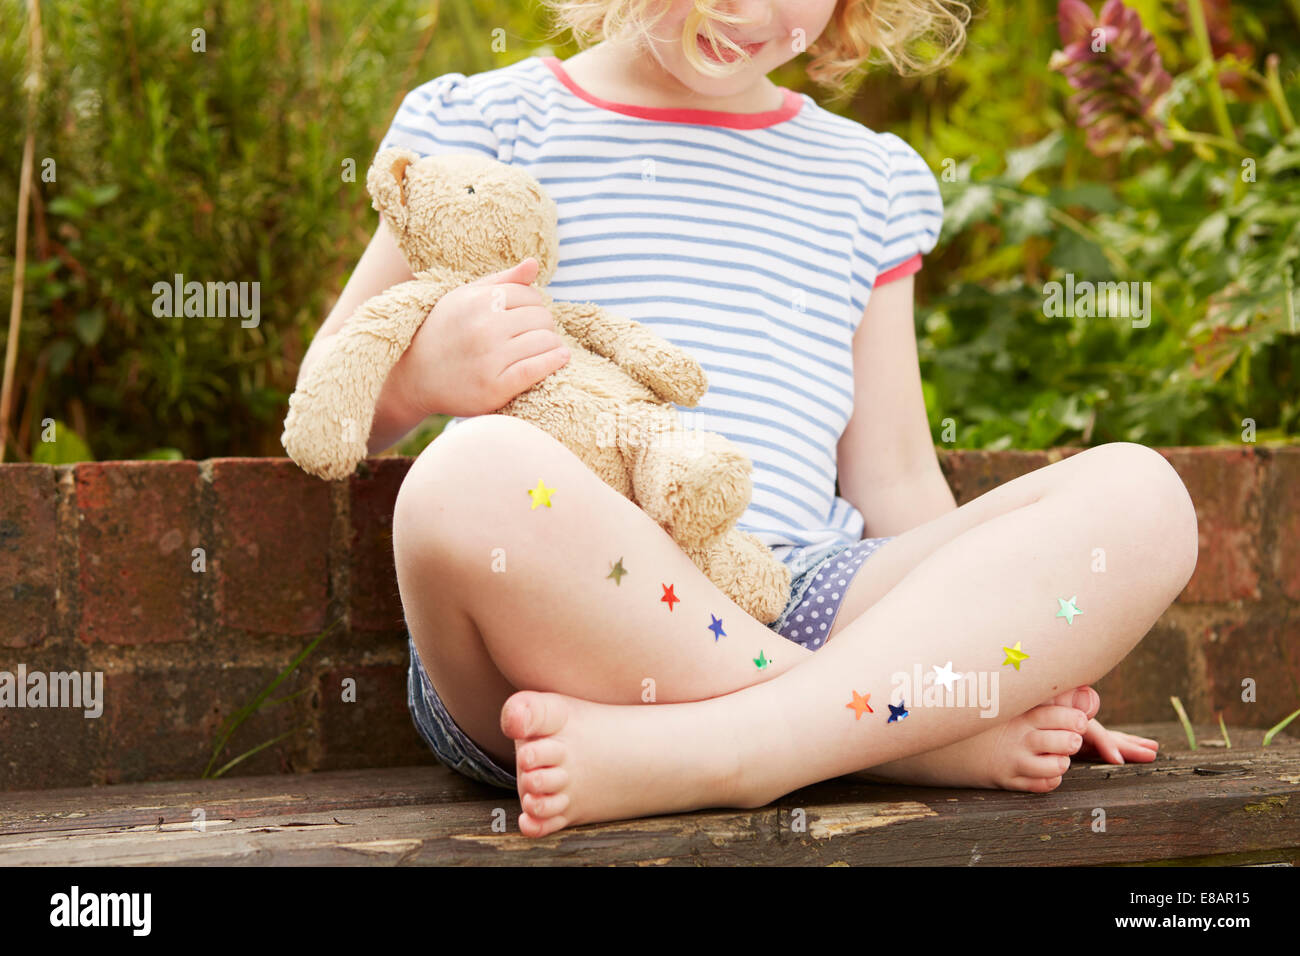 Girl on garden seat with star stickers on legs - Stock Image